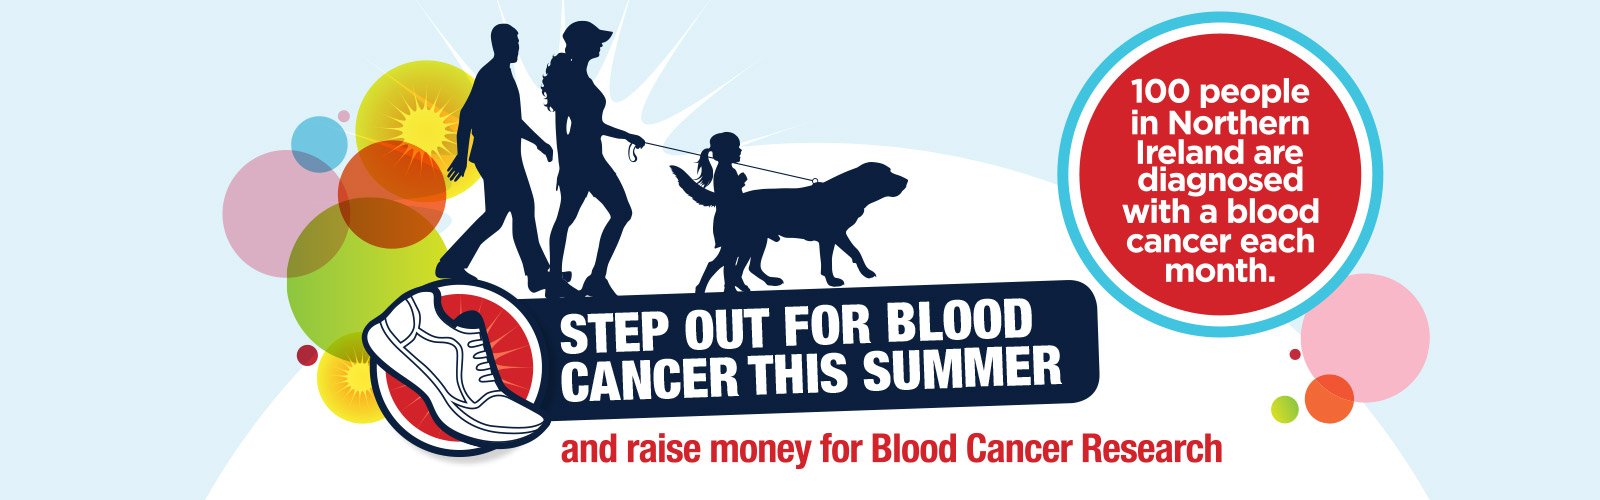 Step out for blood cancer